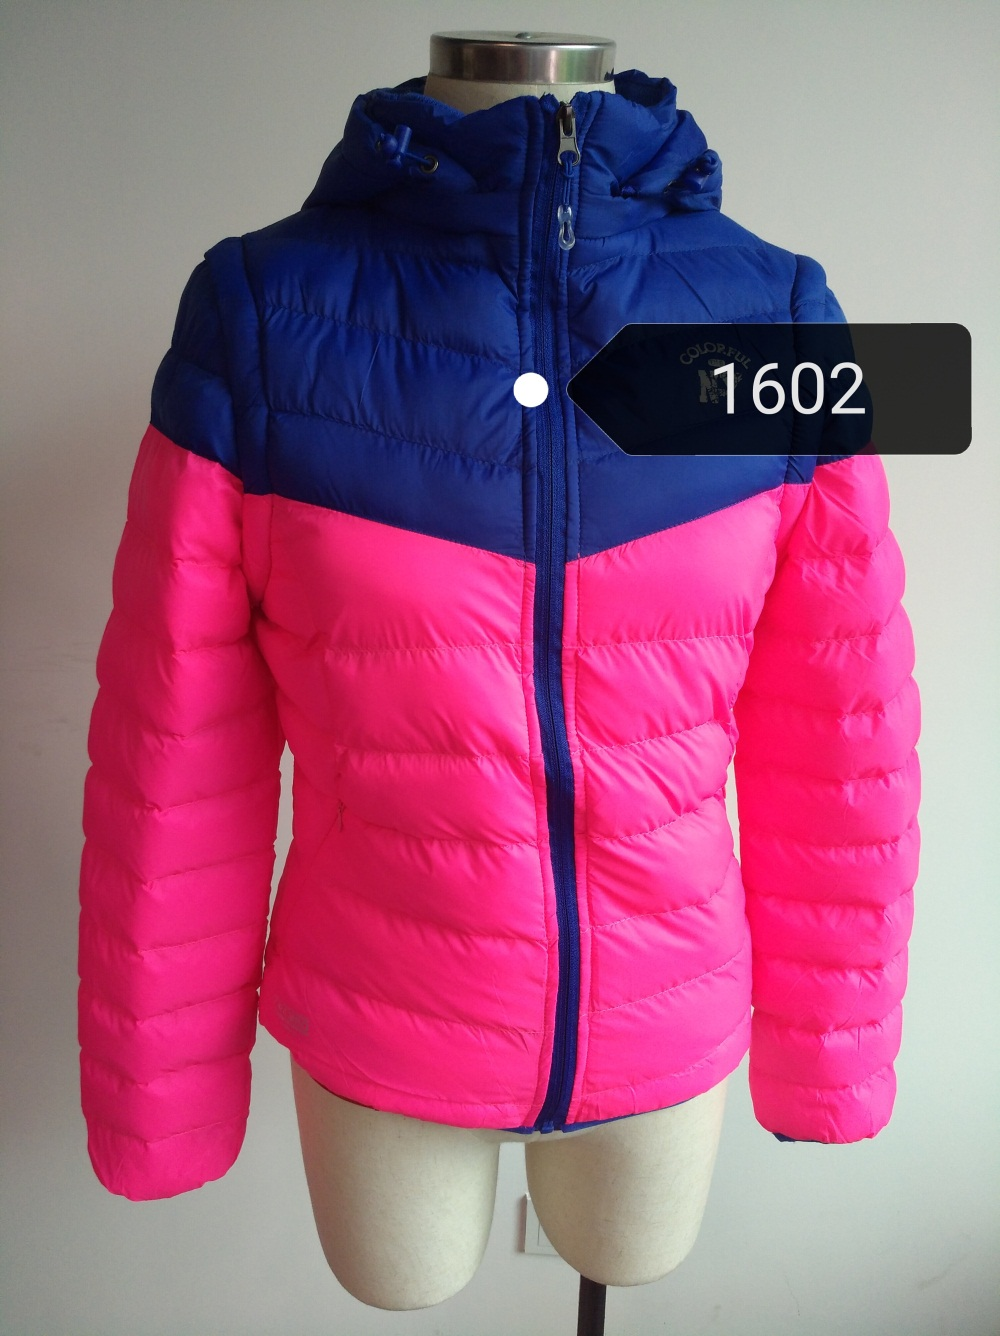 women's jacket,fashion jacket,latest winter jacket for women 1602